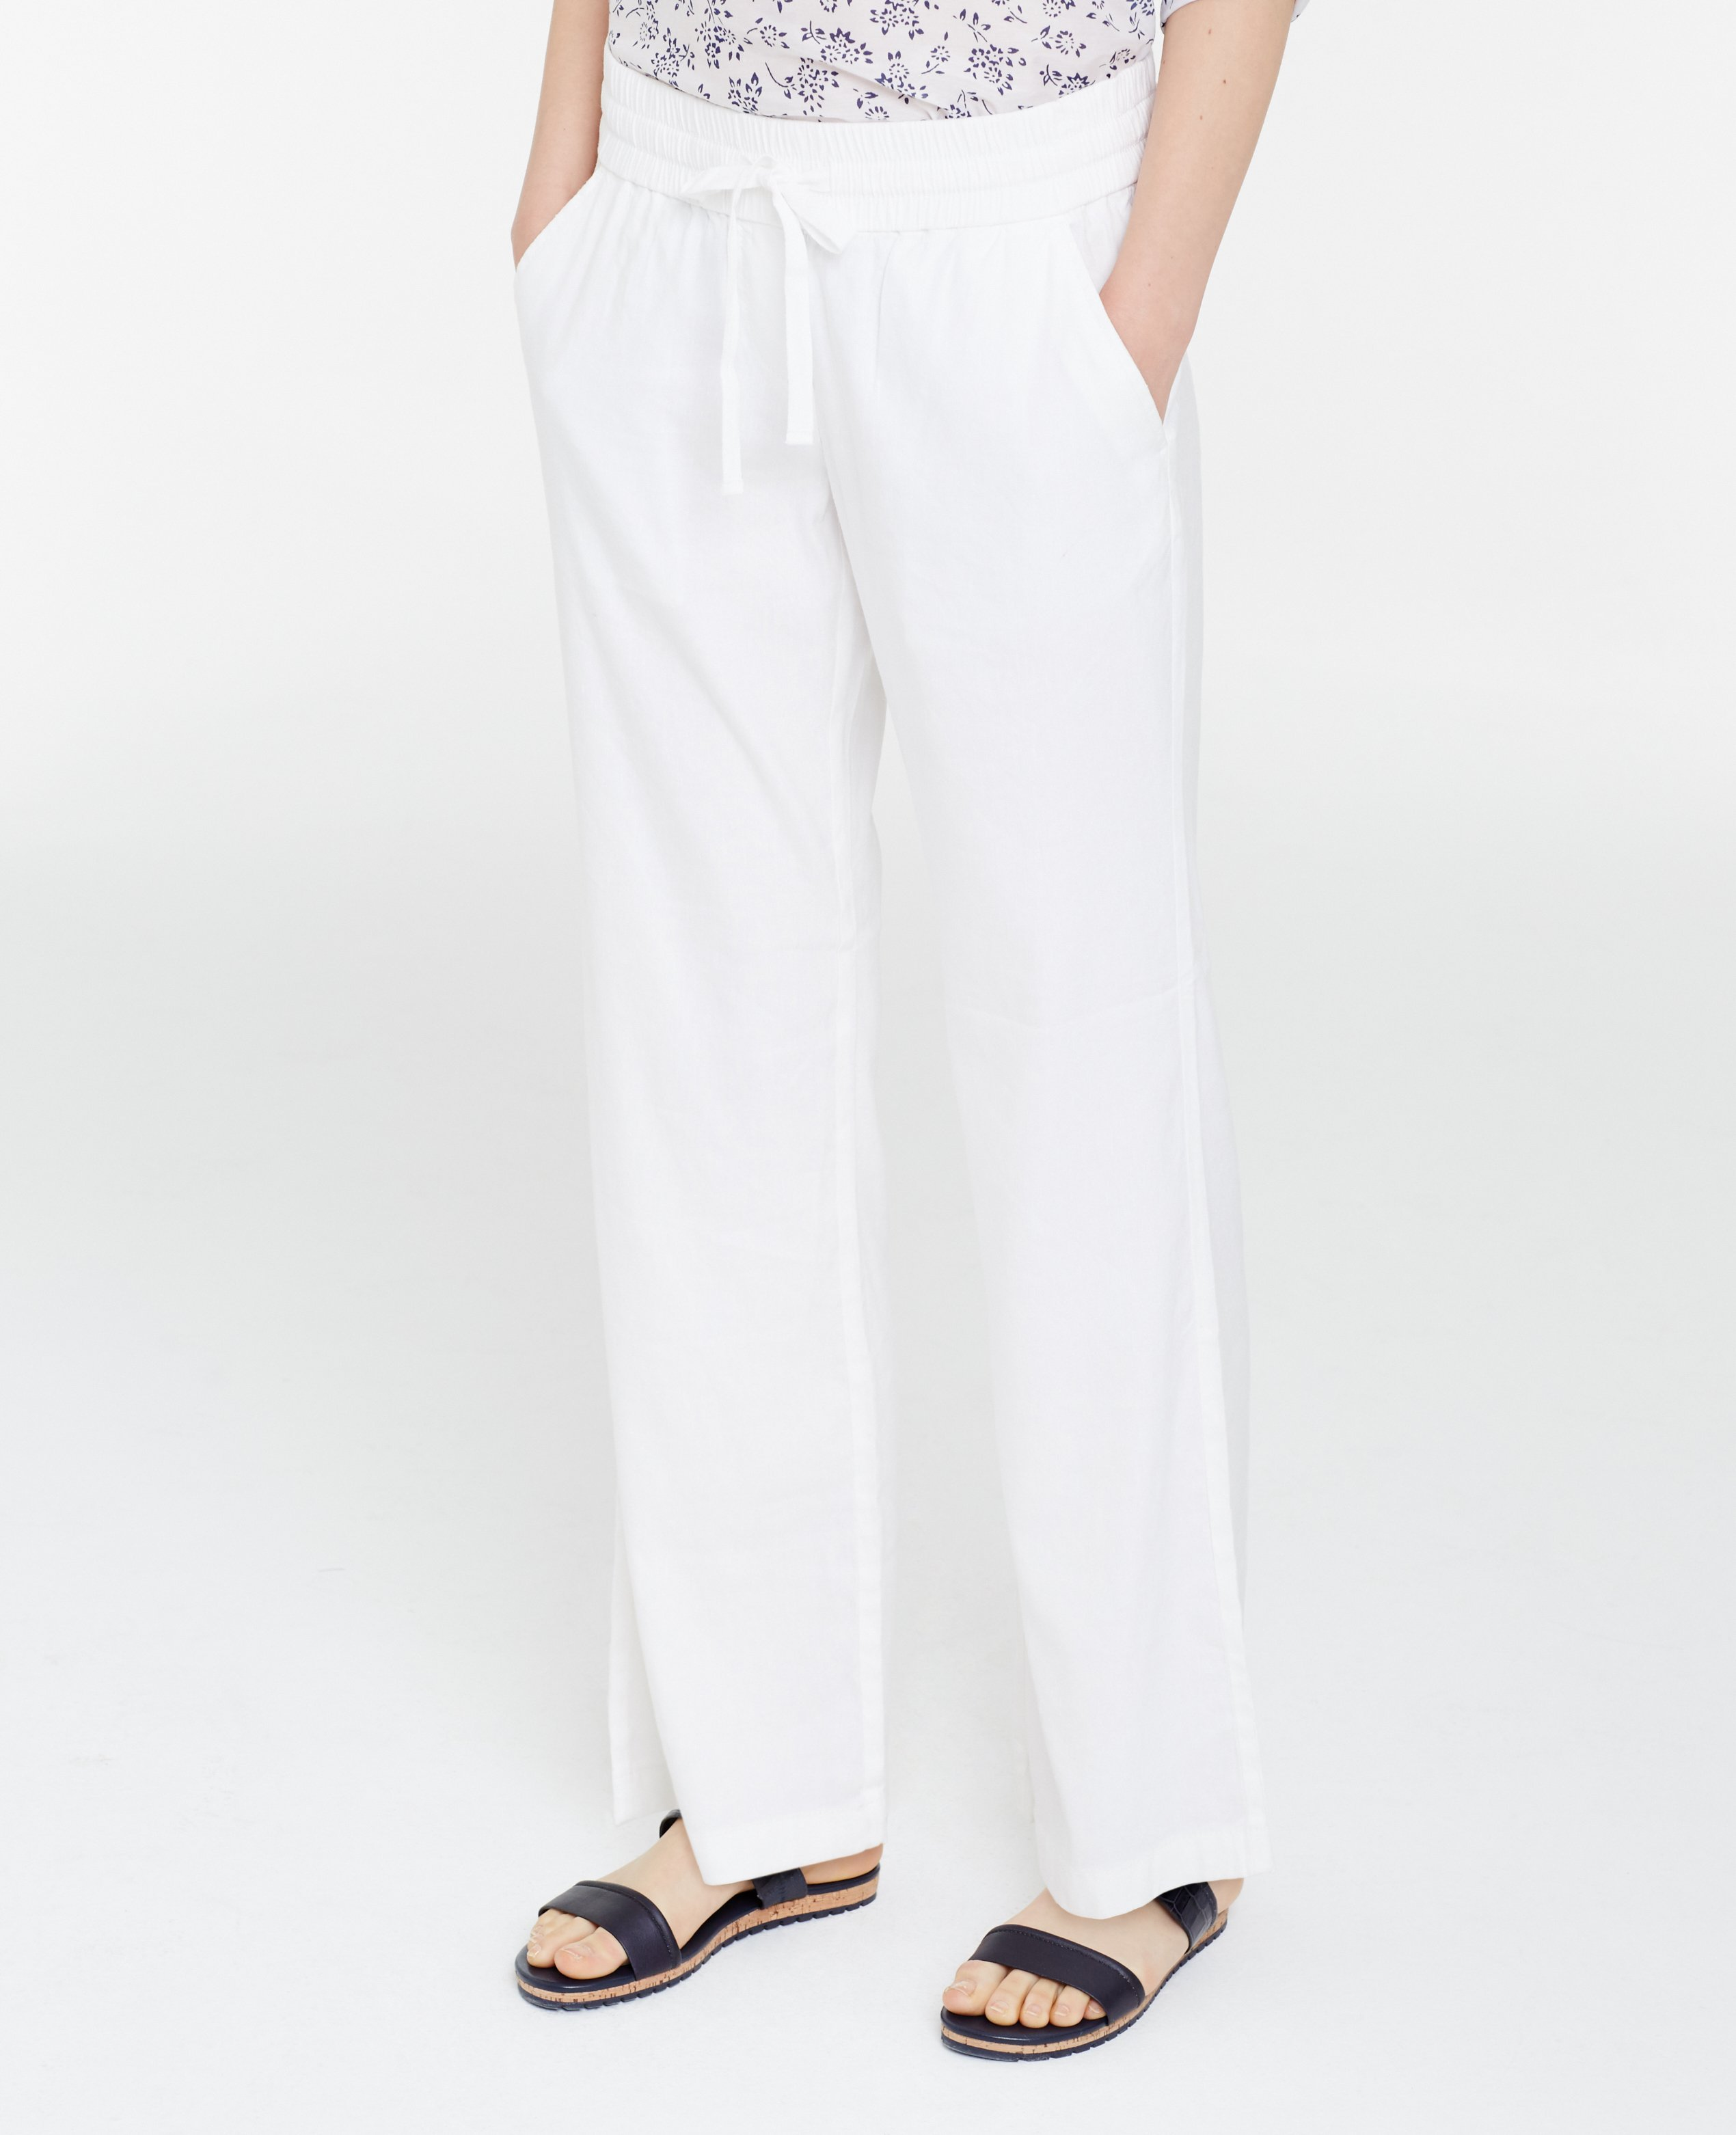 Ann taylor Petite Linen Blend Beach Pants in White | Lyst